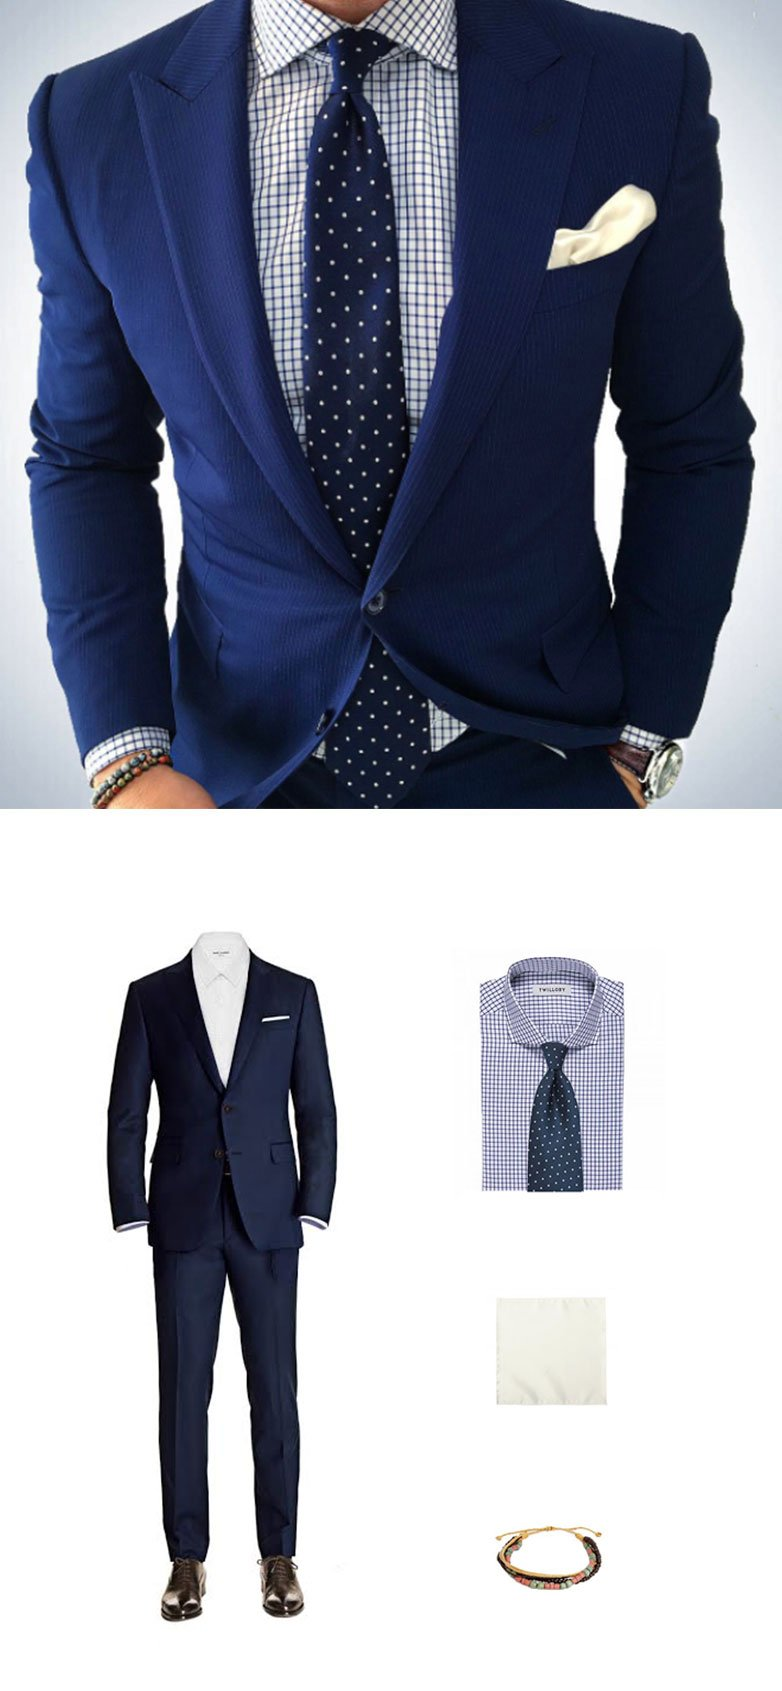 1e854eeb2b36 Get The Look - Navy Polka Dot Tie and Blue Suit